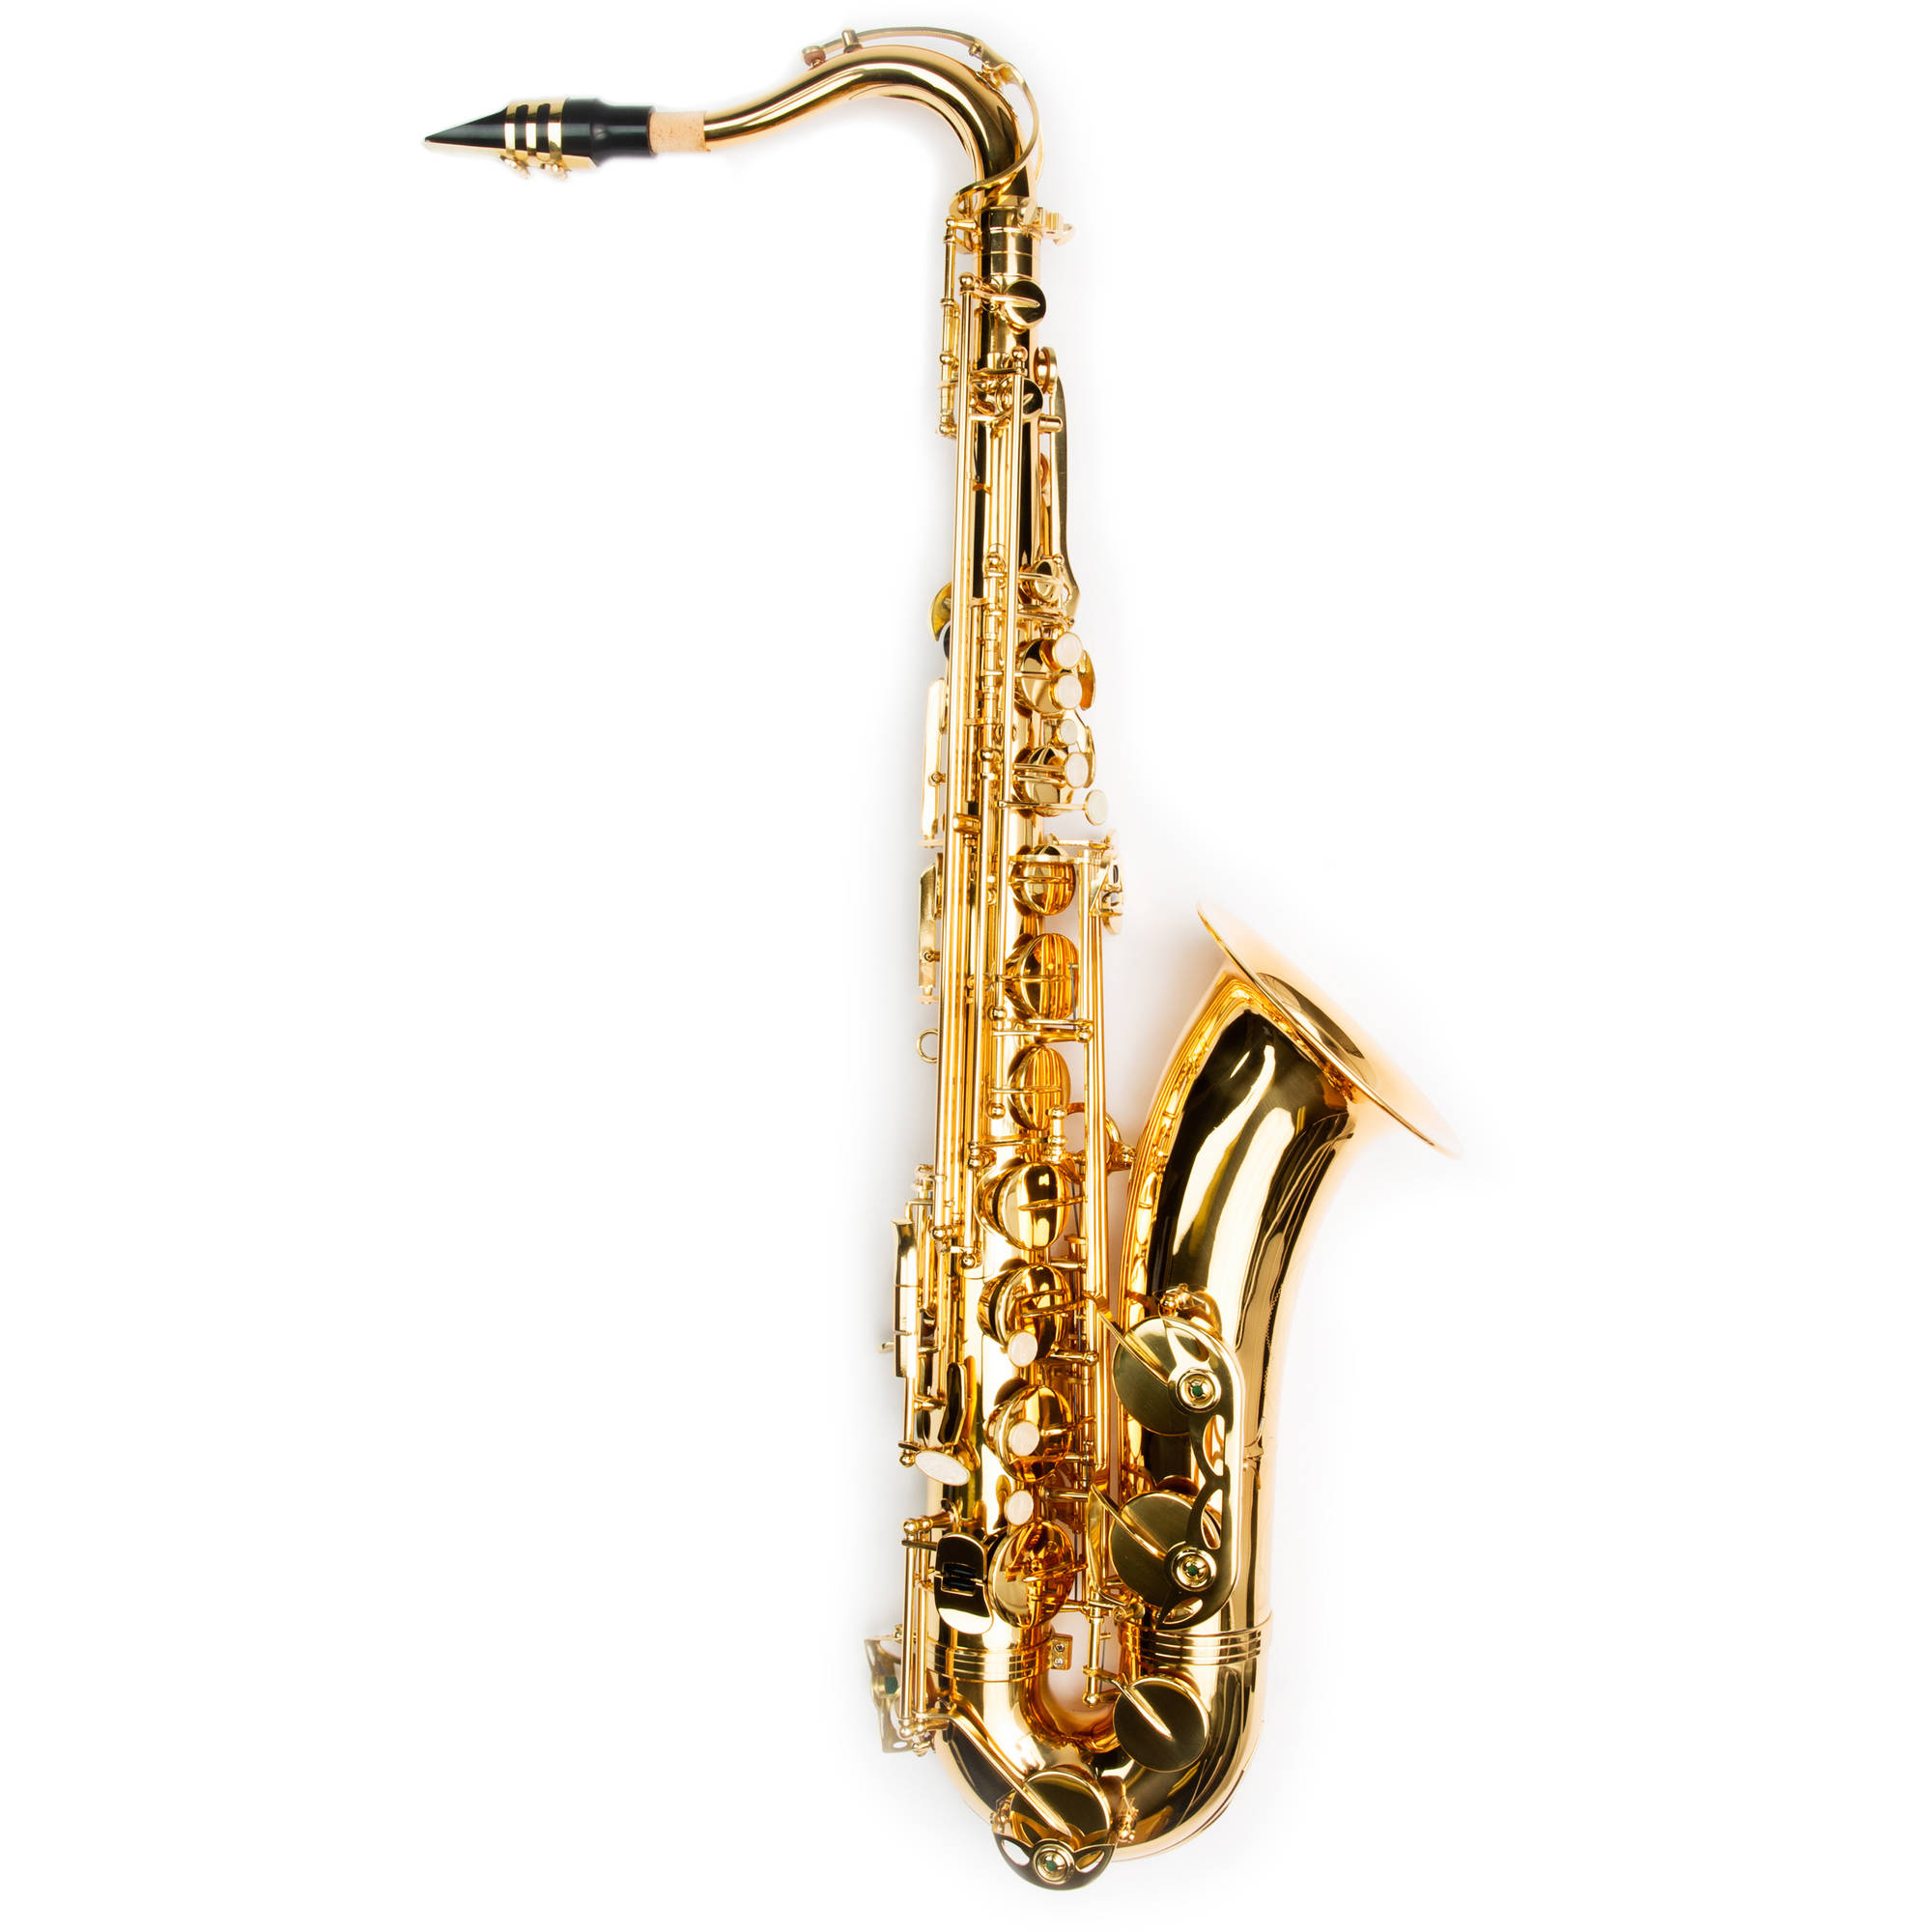 Kayata E-Flat F-Sharp Key Student   Intermediate Alto Saxophone with Case and... by KAYATA